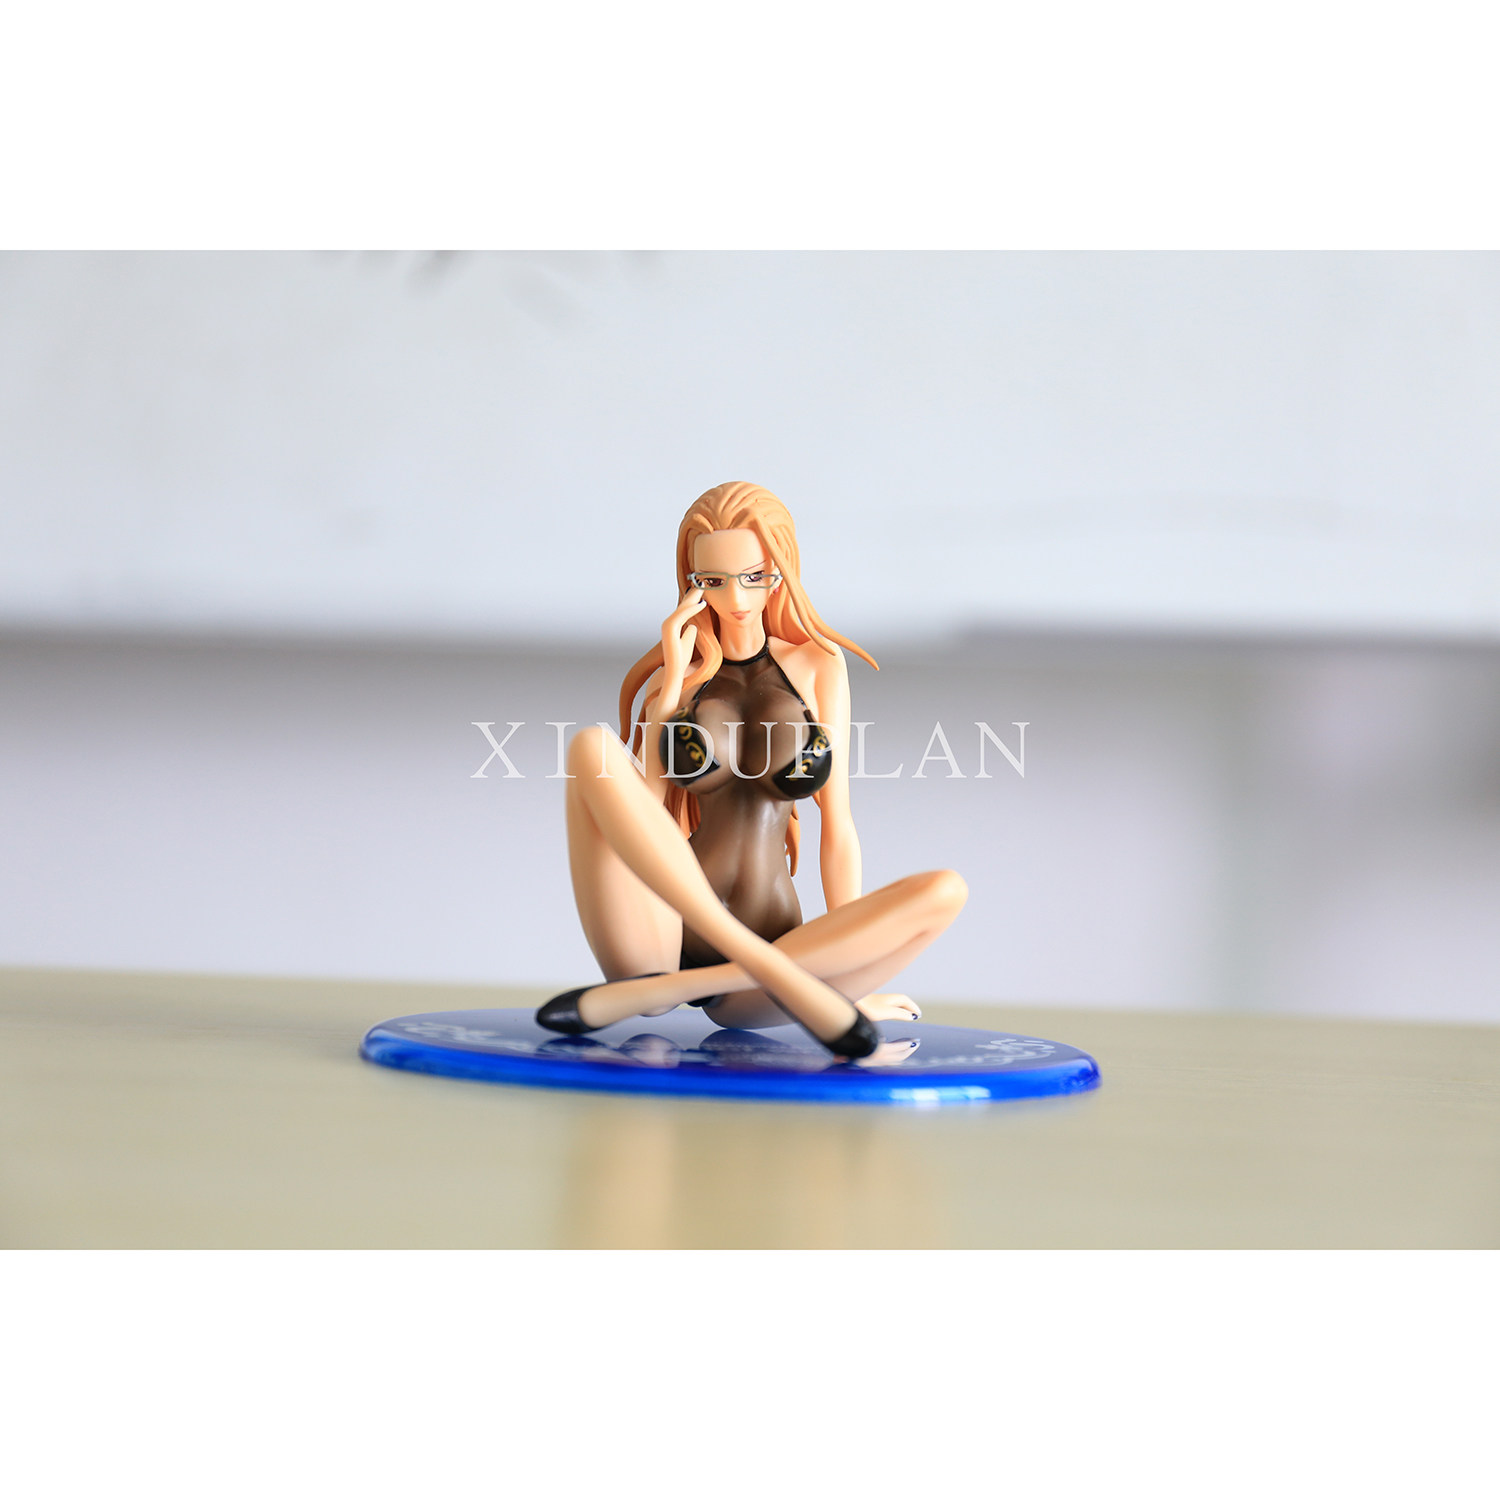 XINDUPLAN One Piece Anime Kalifa CP9 Onepiece New World Sexy Swimsuit Ver.BB Action Figure Toys 12cm PVC Collect Model 0989